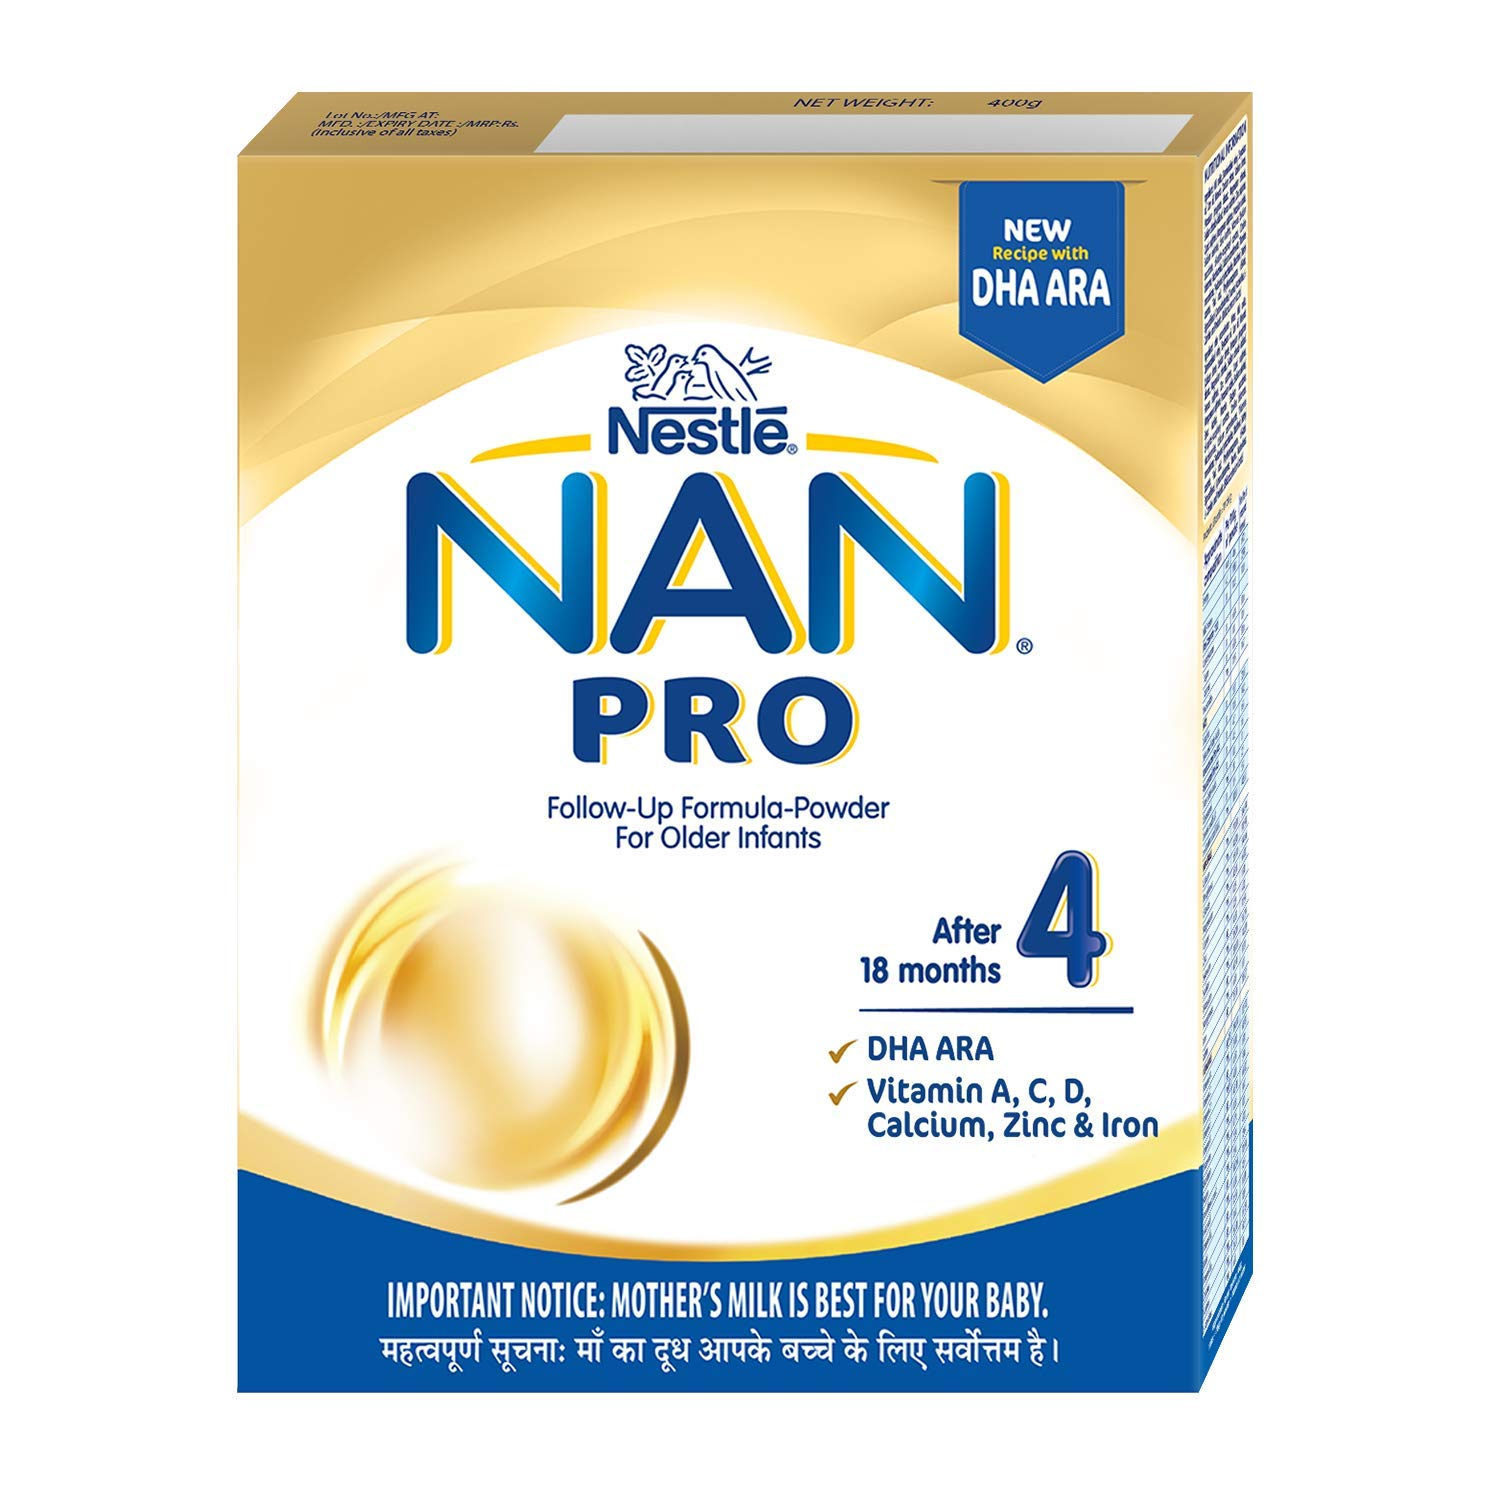 NAN PRO 4 Follow-Up Formula-Powder 400g Refill pack